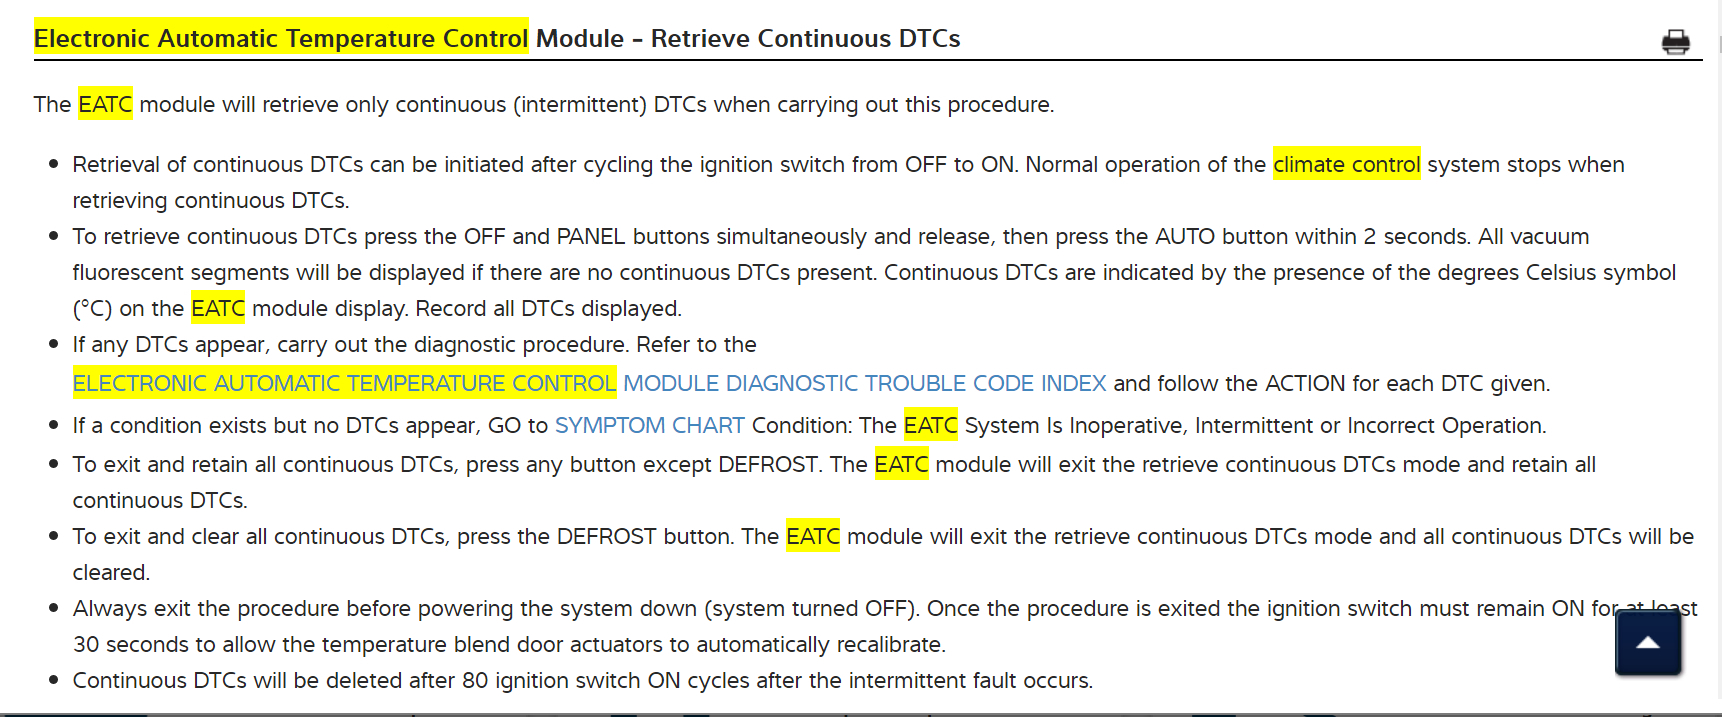 AC Automatically Defaults to Defrost and Air Speed Cannot Be